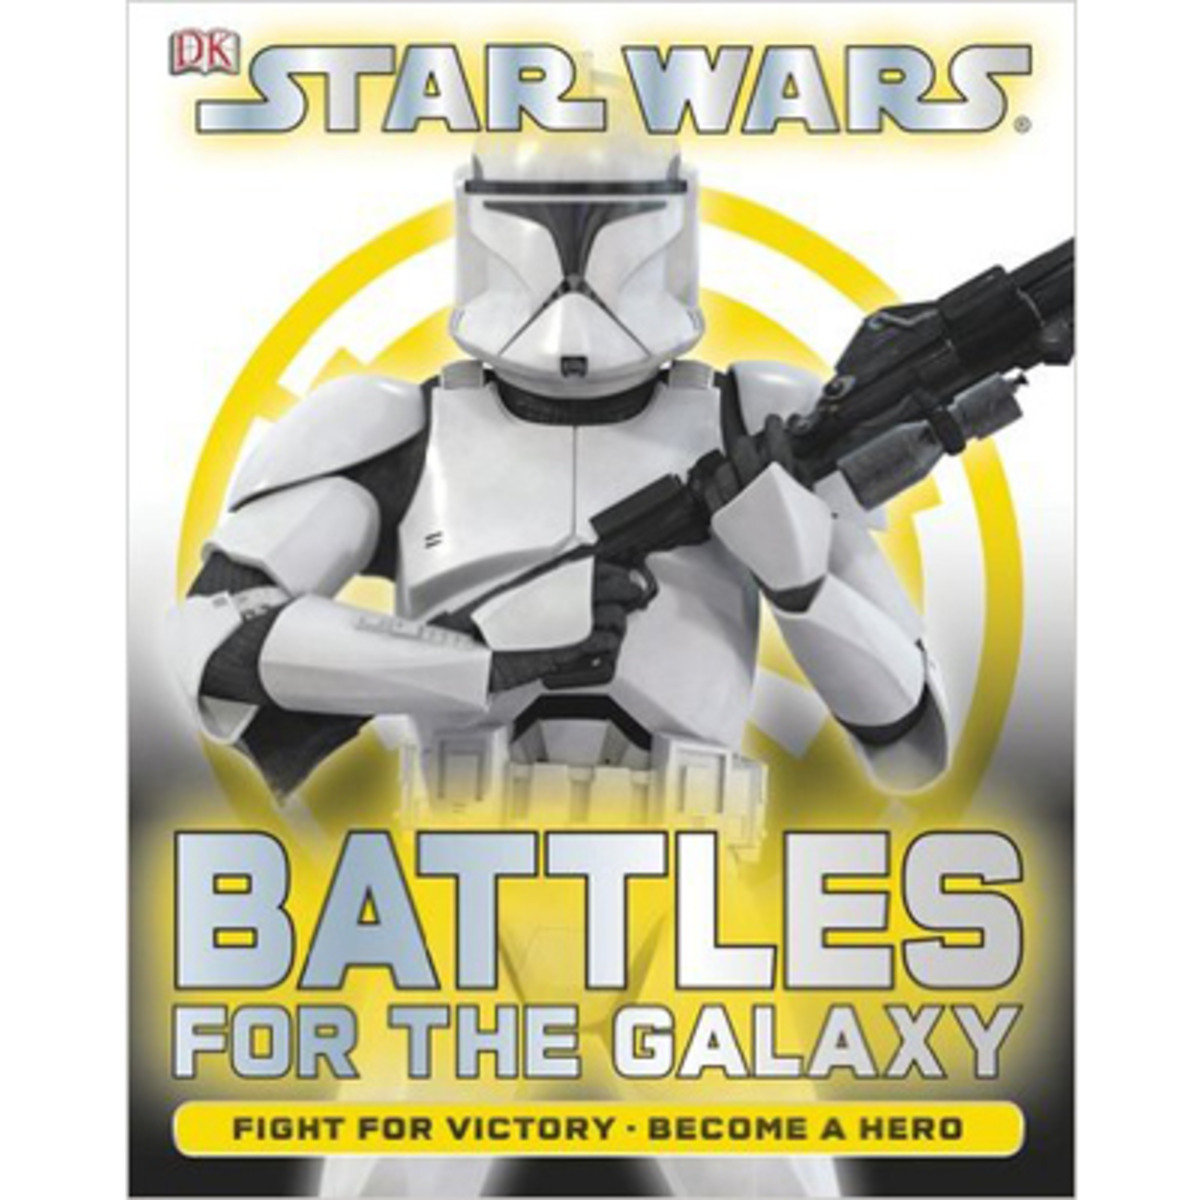 Star Wars: Battle for the Galaxy